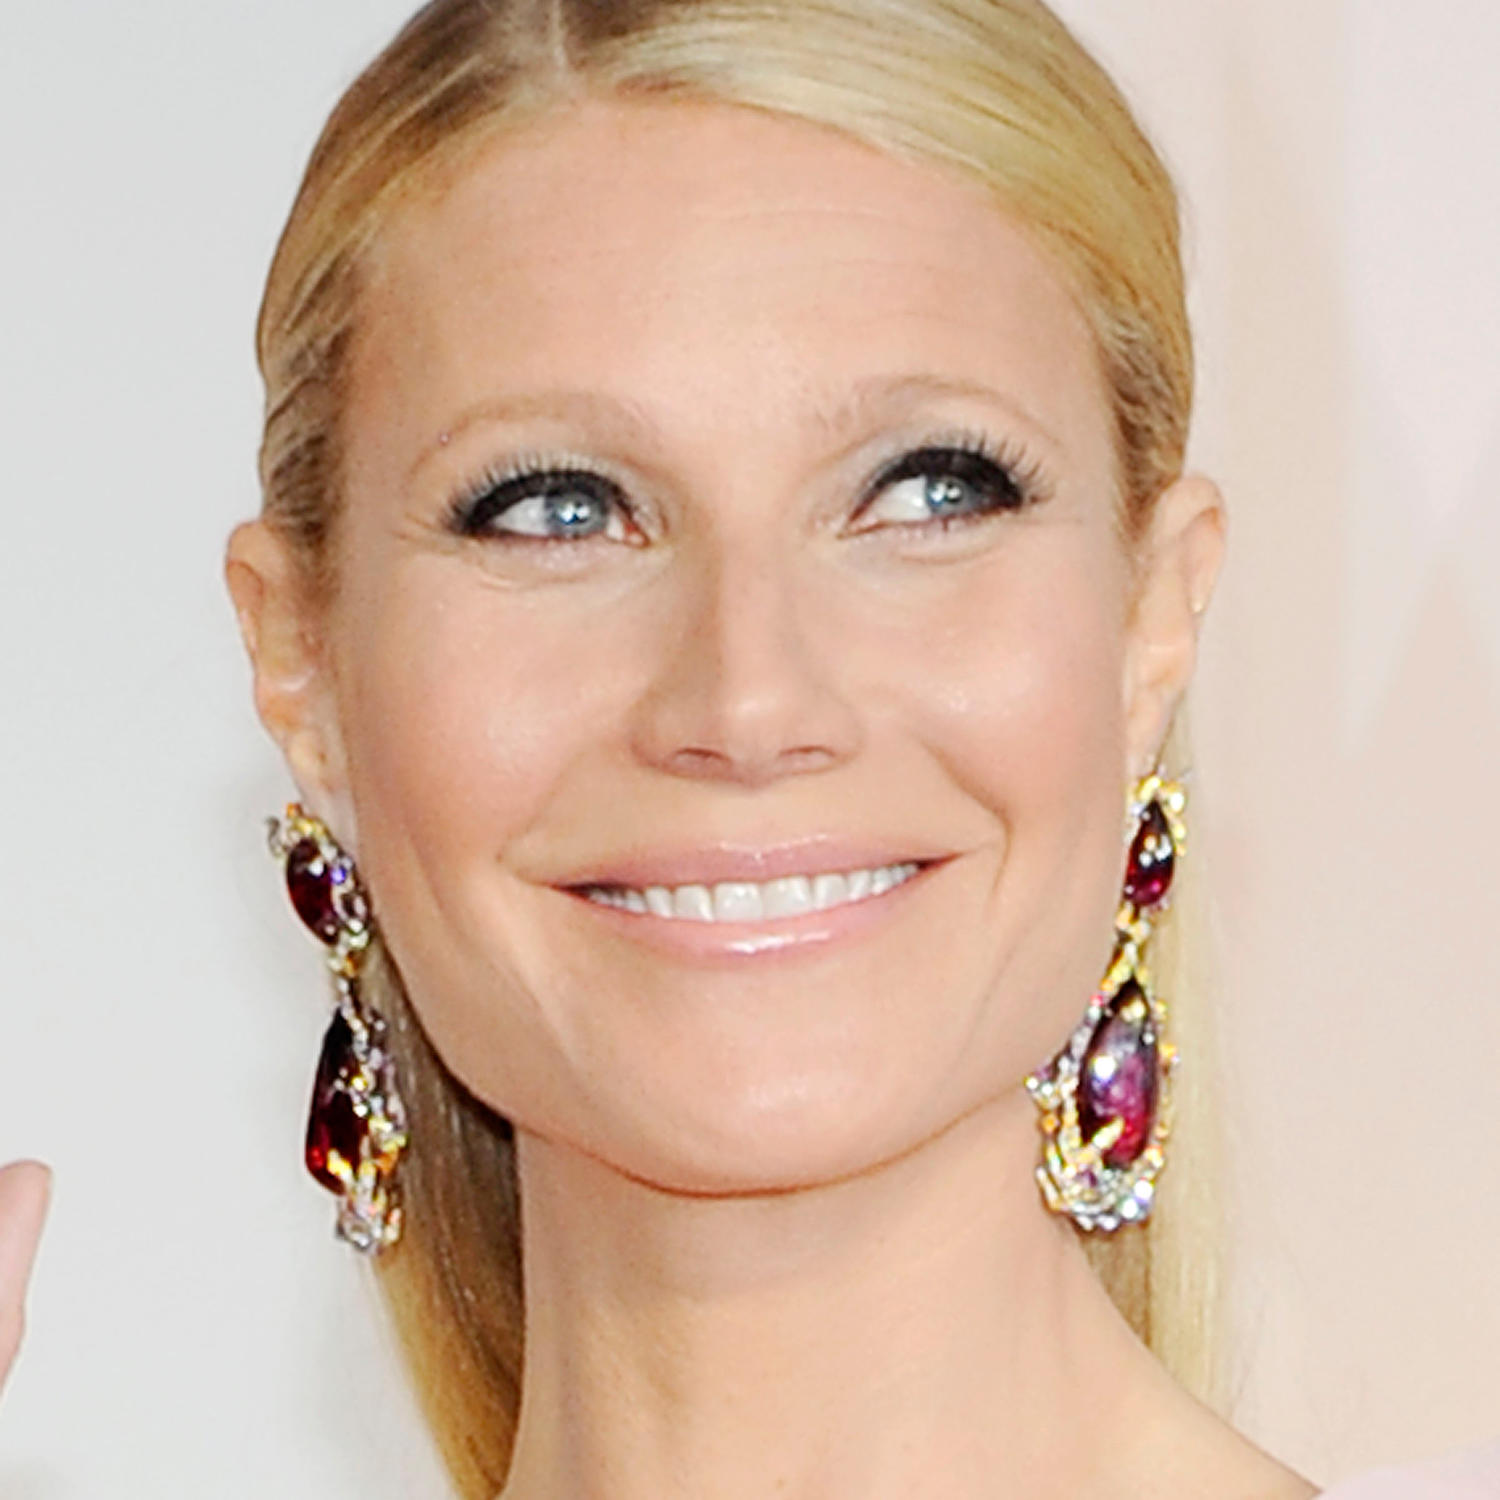 Gwyneth Paltrow Takes on Healthy Beauty | Shape Magazine